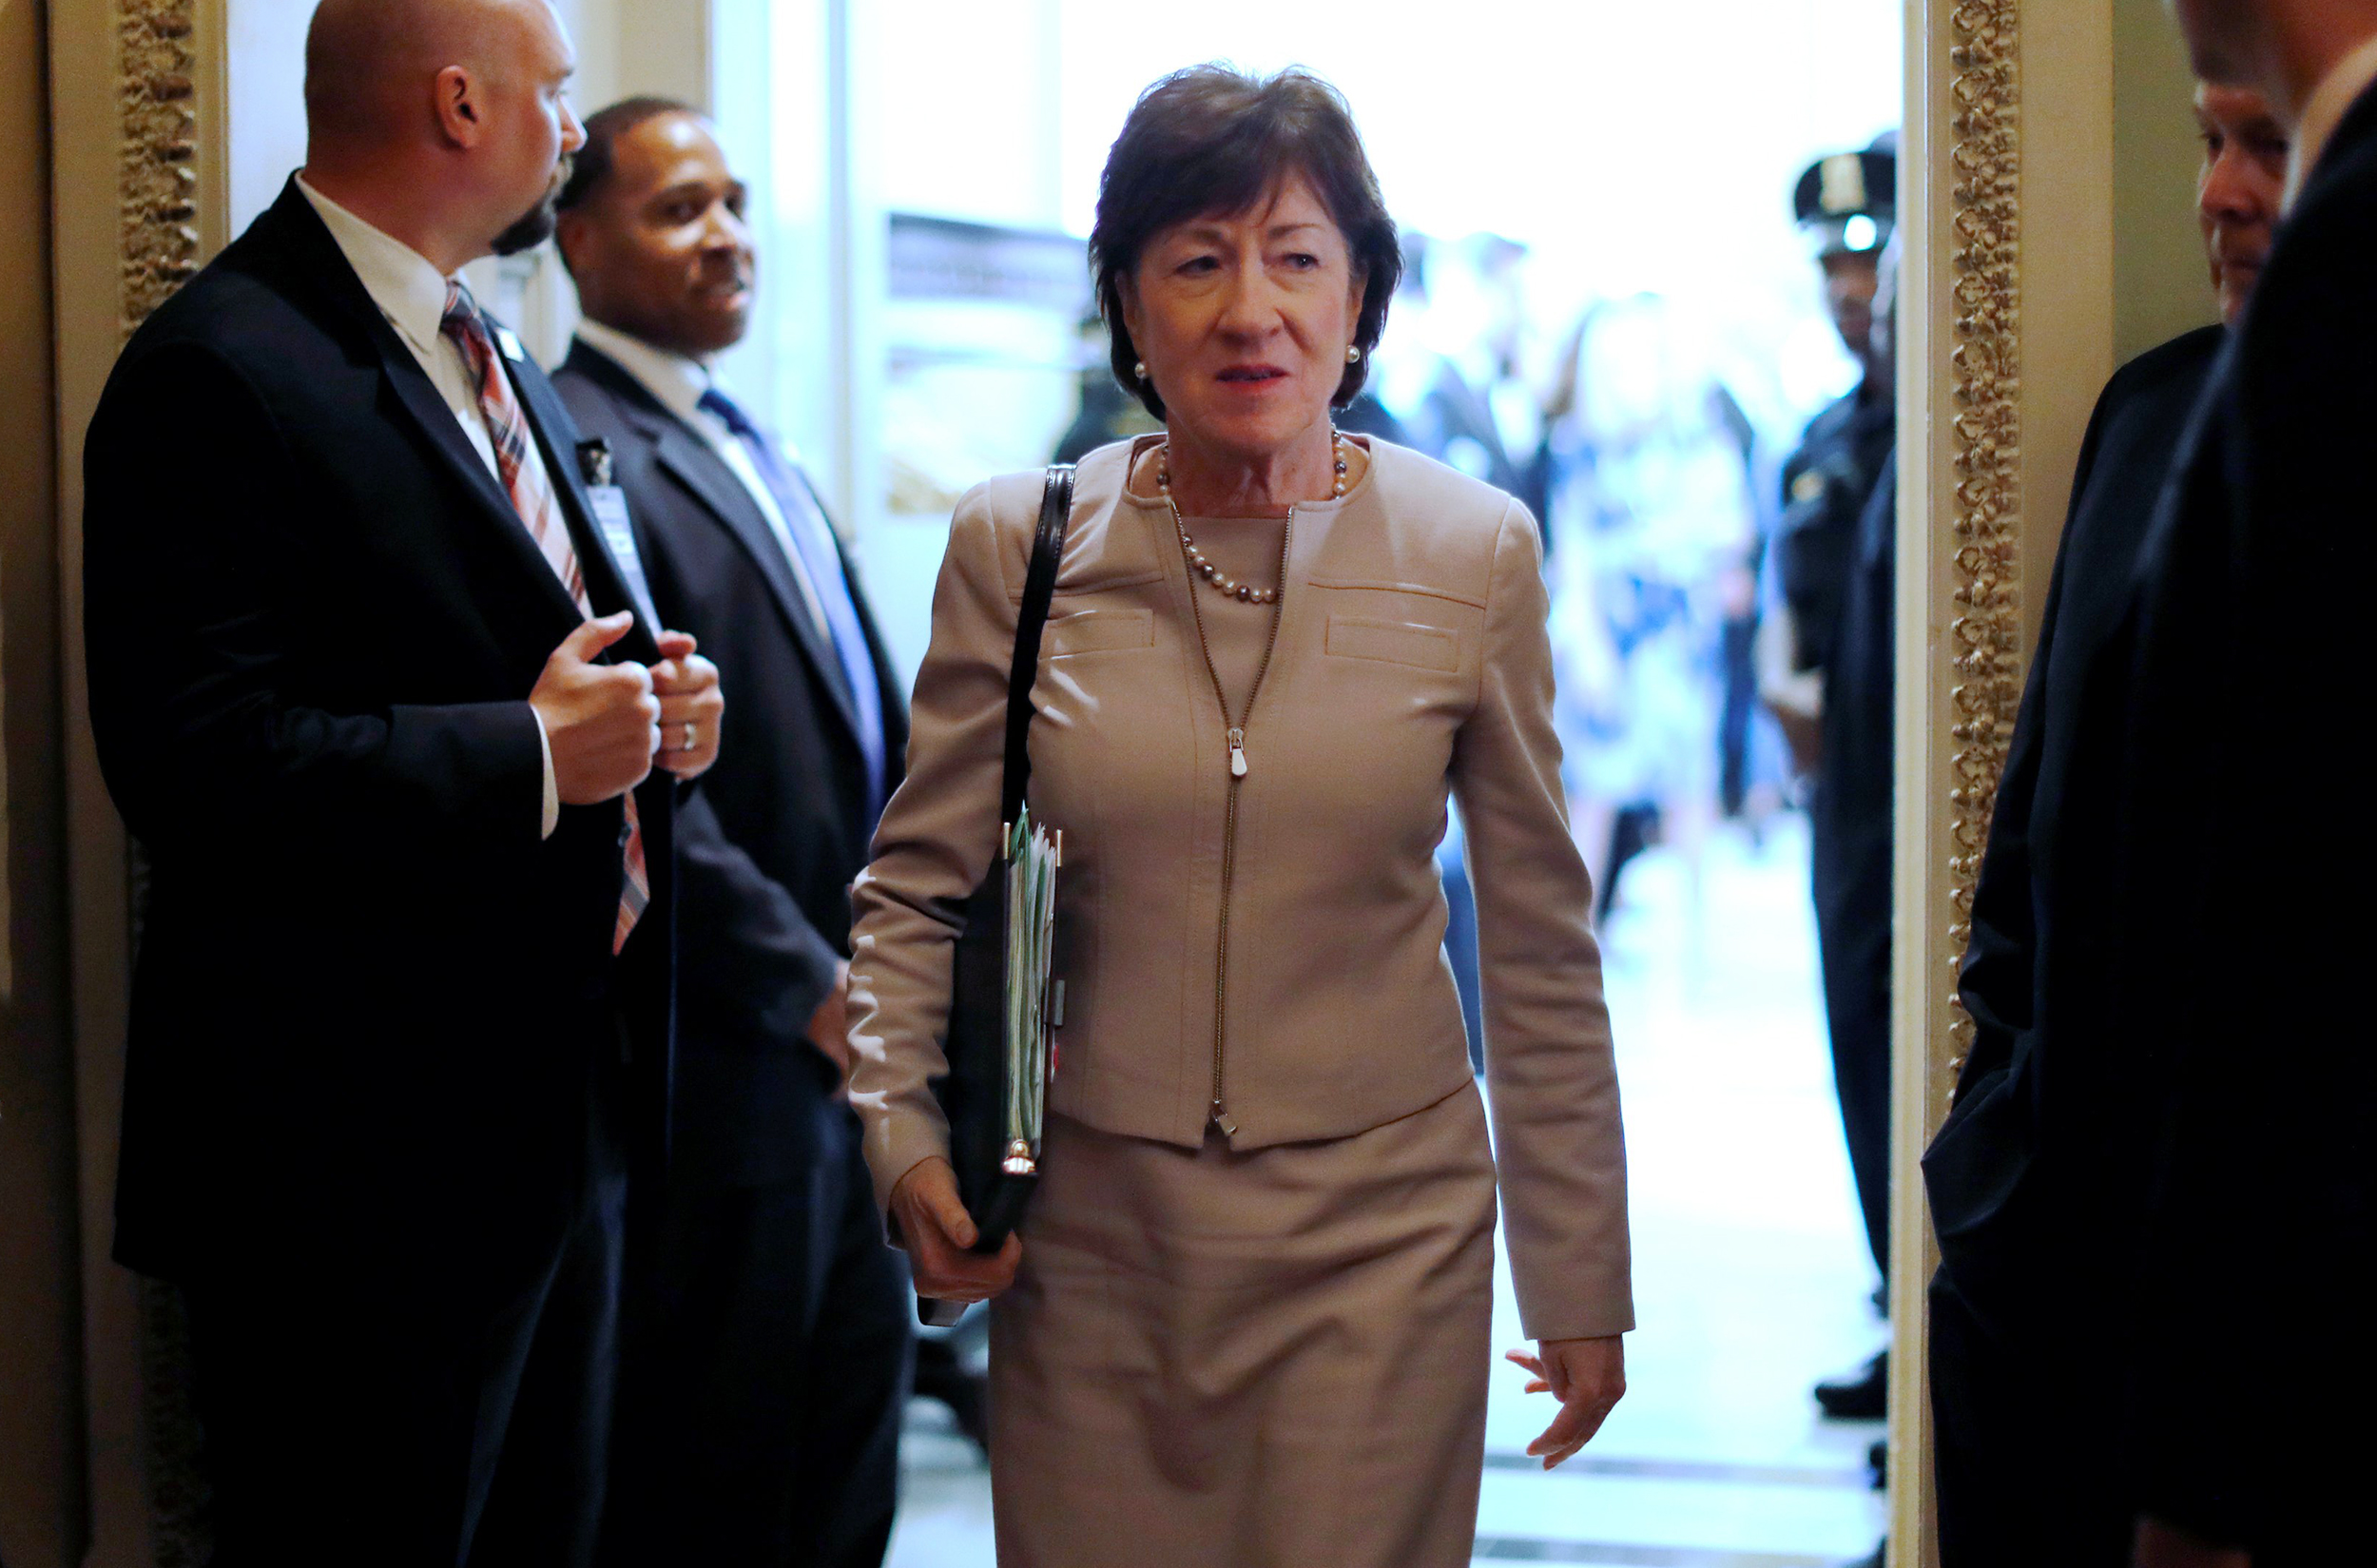 Image: U.S. Senator Collins departs after the weekly Republican caucus policy luncheon at the U.S. Capitol in Washington